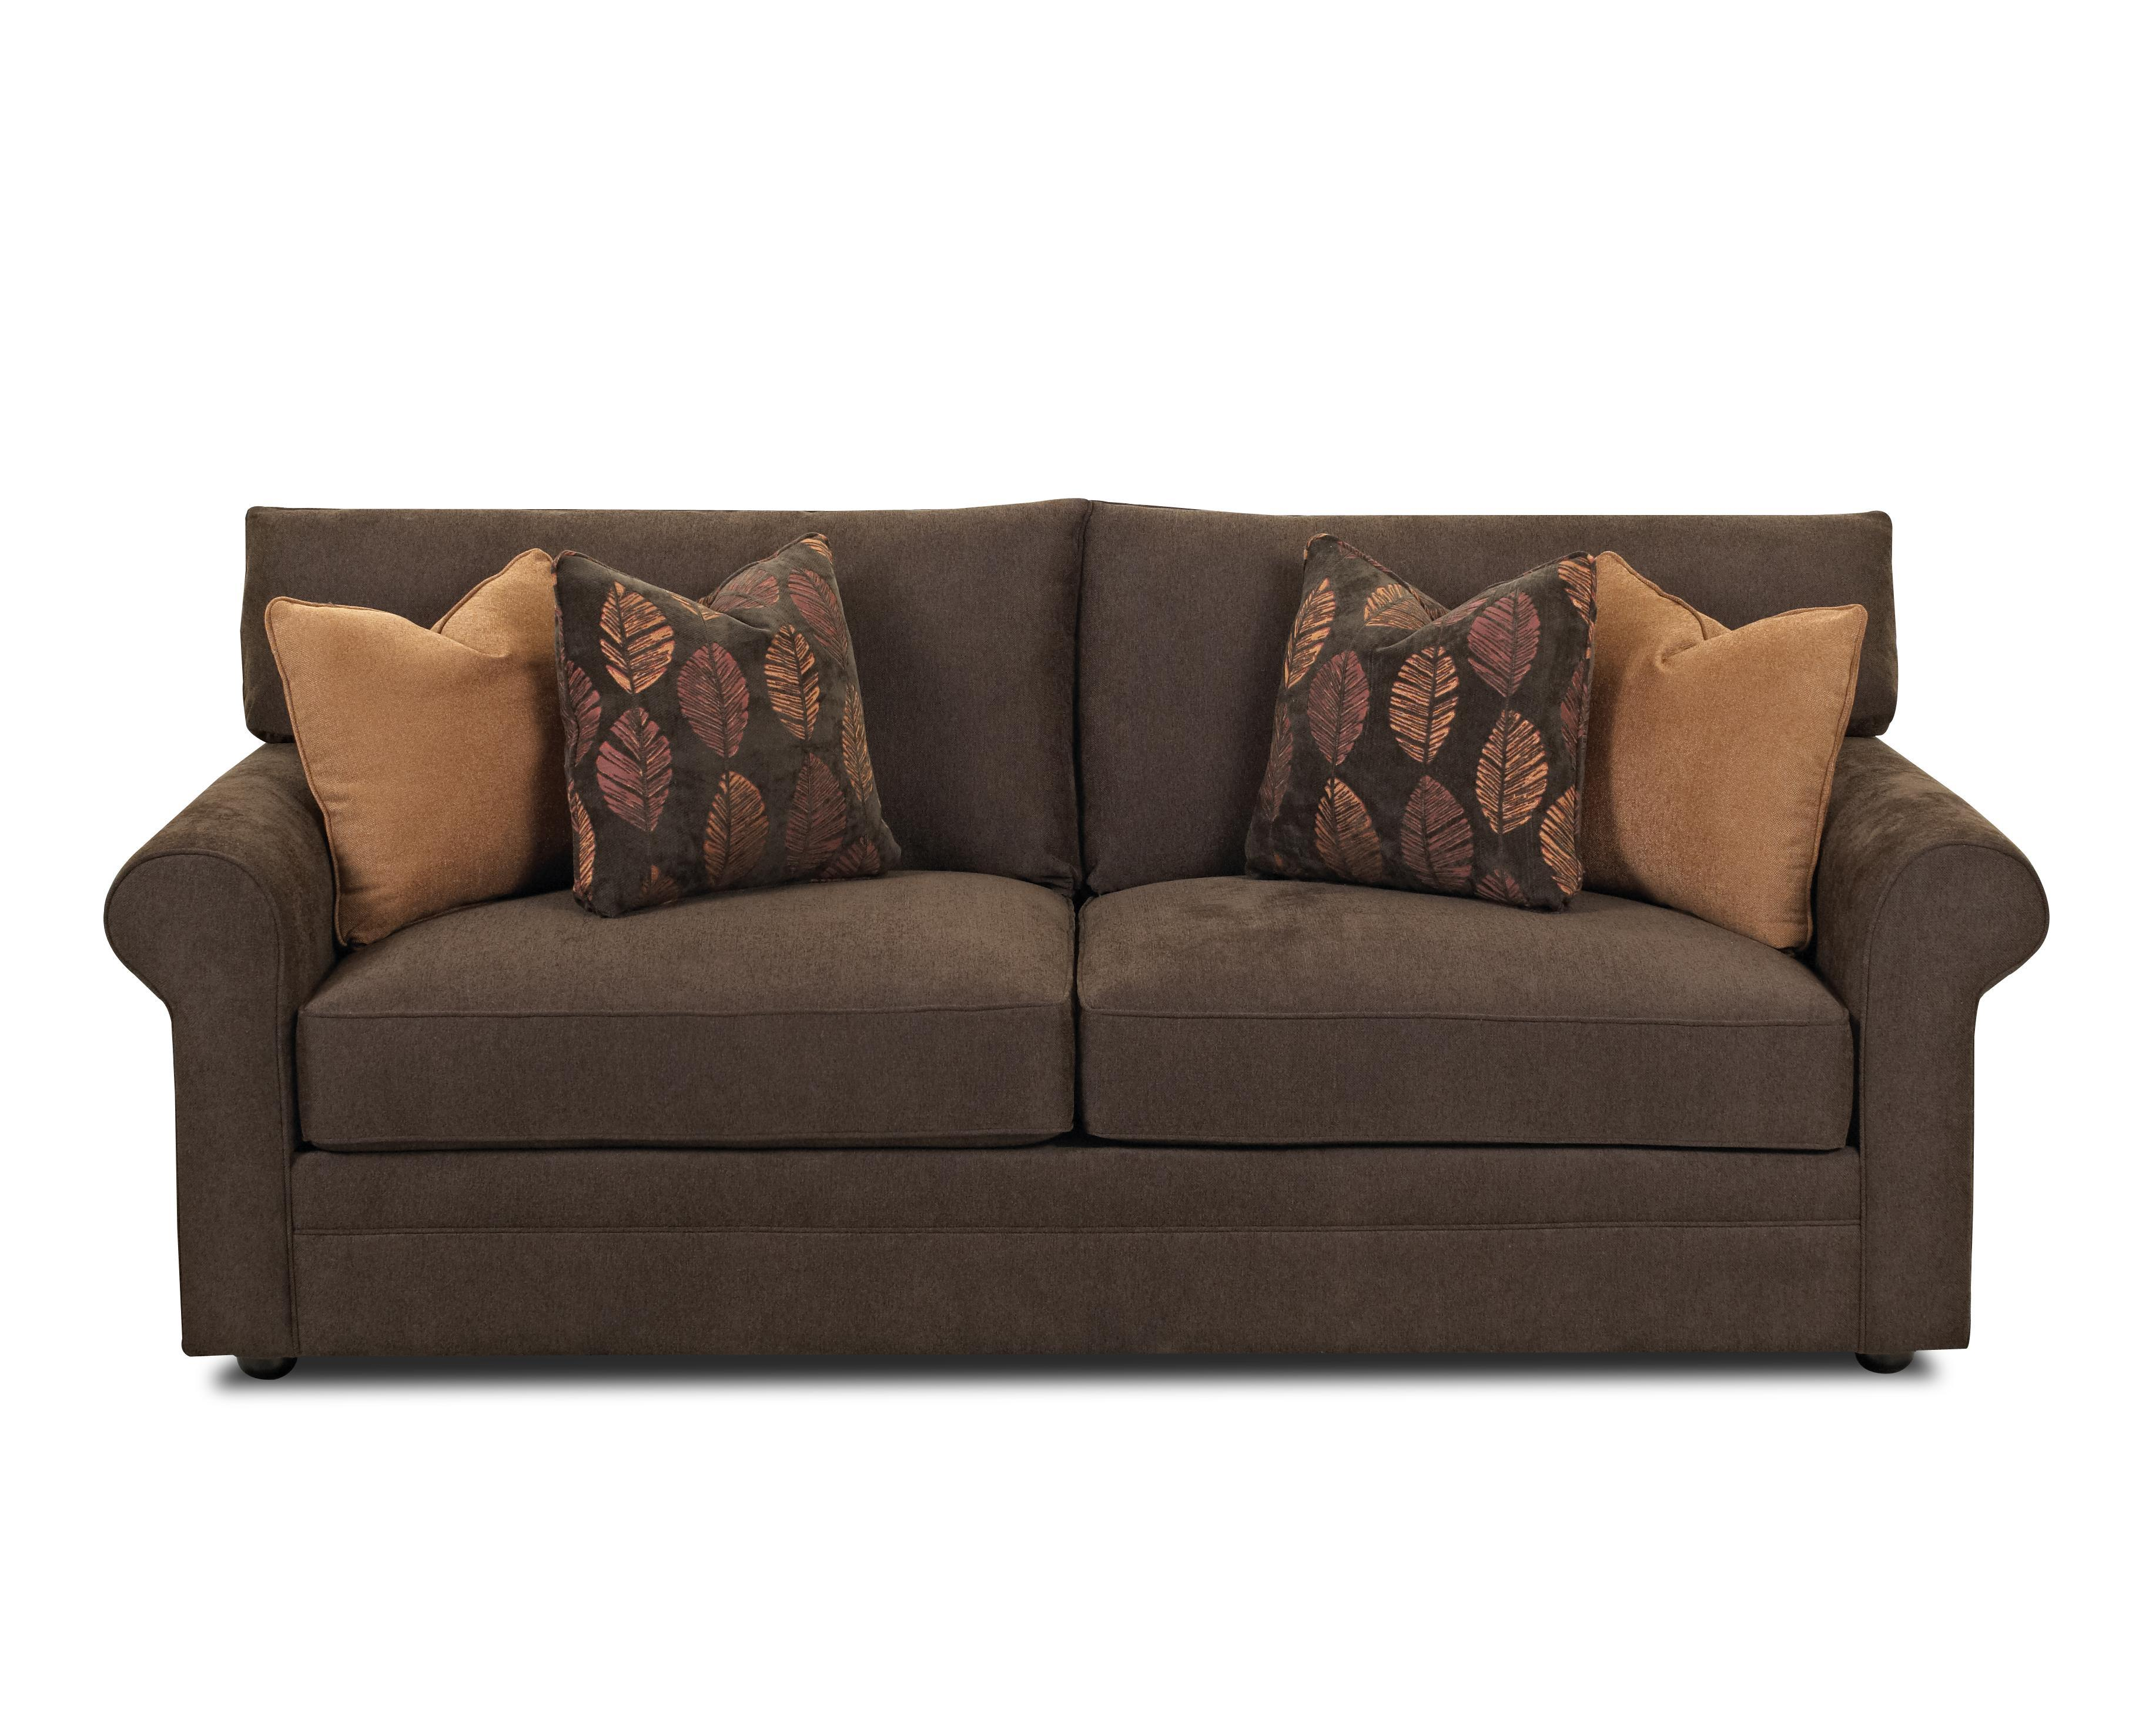 Sofa Welt Casual Stationary Sofa With Rolled Arms Unattached Back